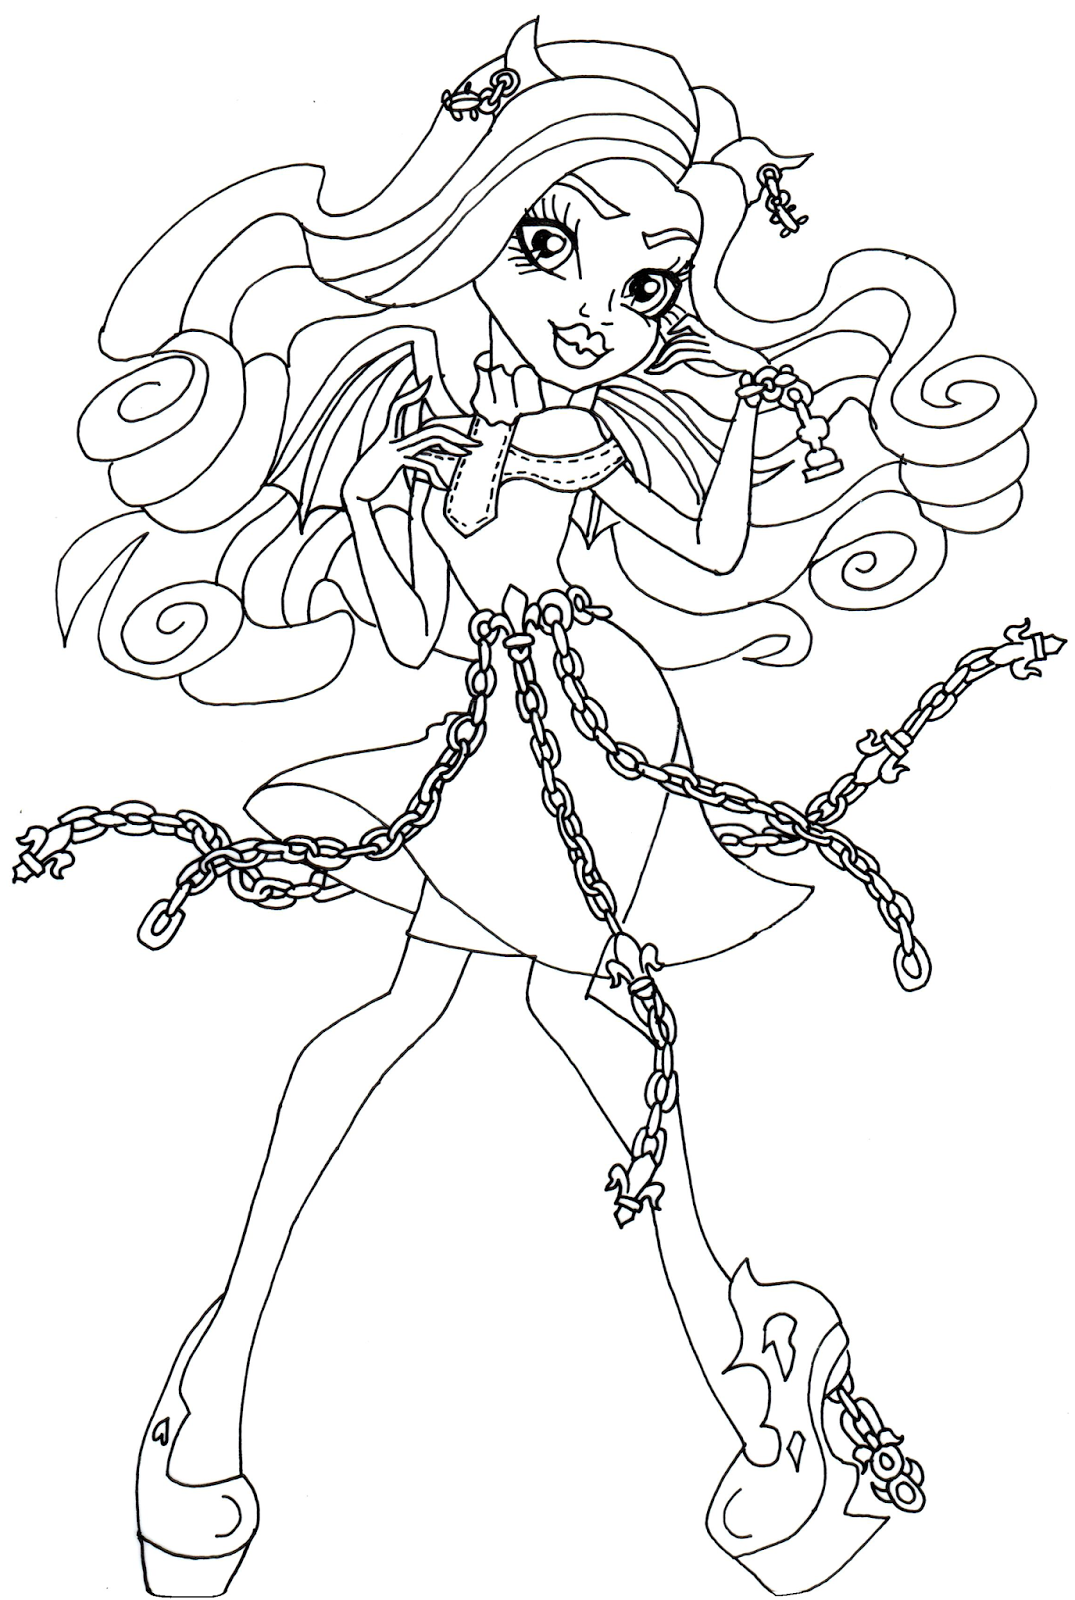 Haunted Rochelle Goyle Monster High Coloring Page Png 1075 1600 Coloring Pages Coloring Books Cute Coloring Pages